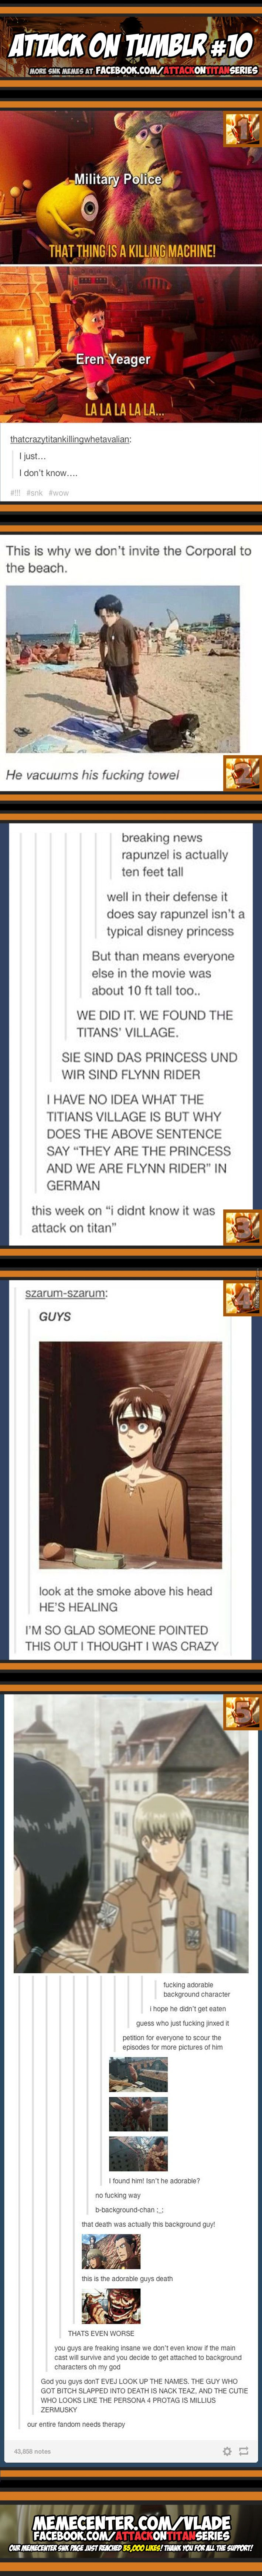 Attack on Tumblr #10 That last Tumblr post on the pic is so true!